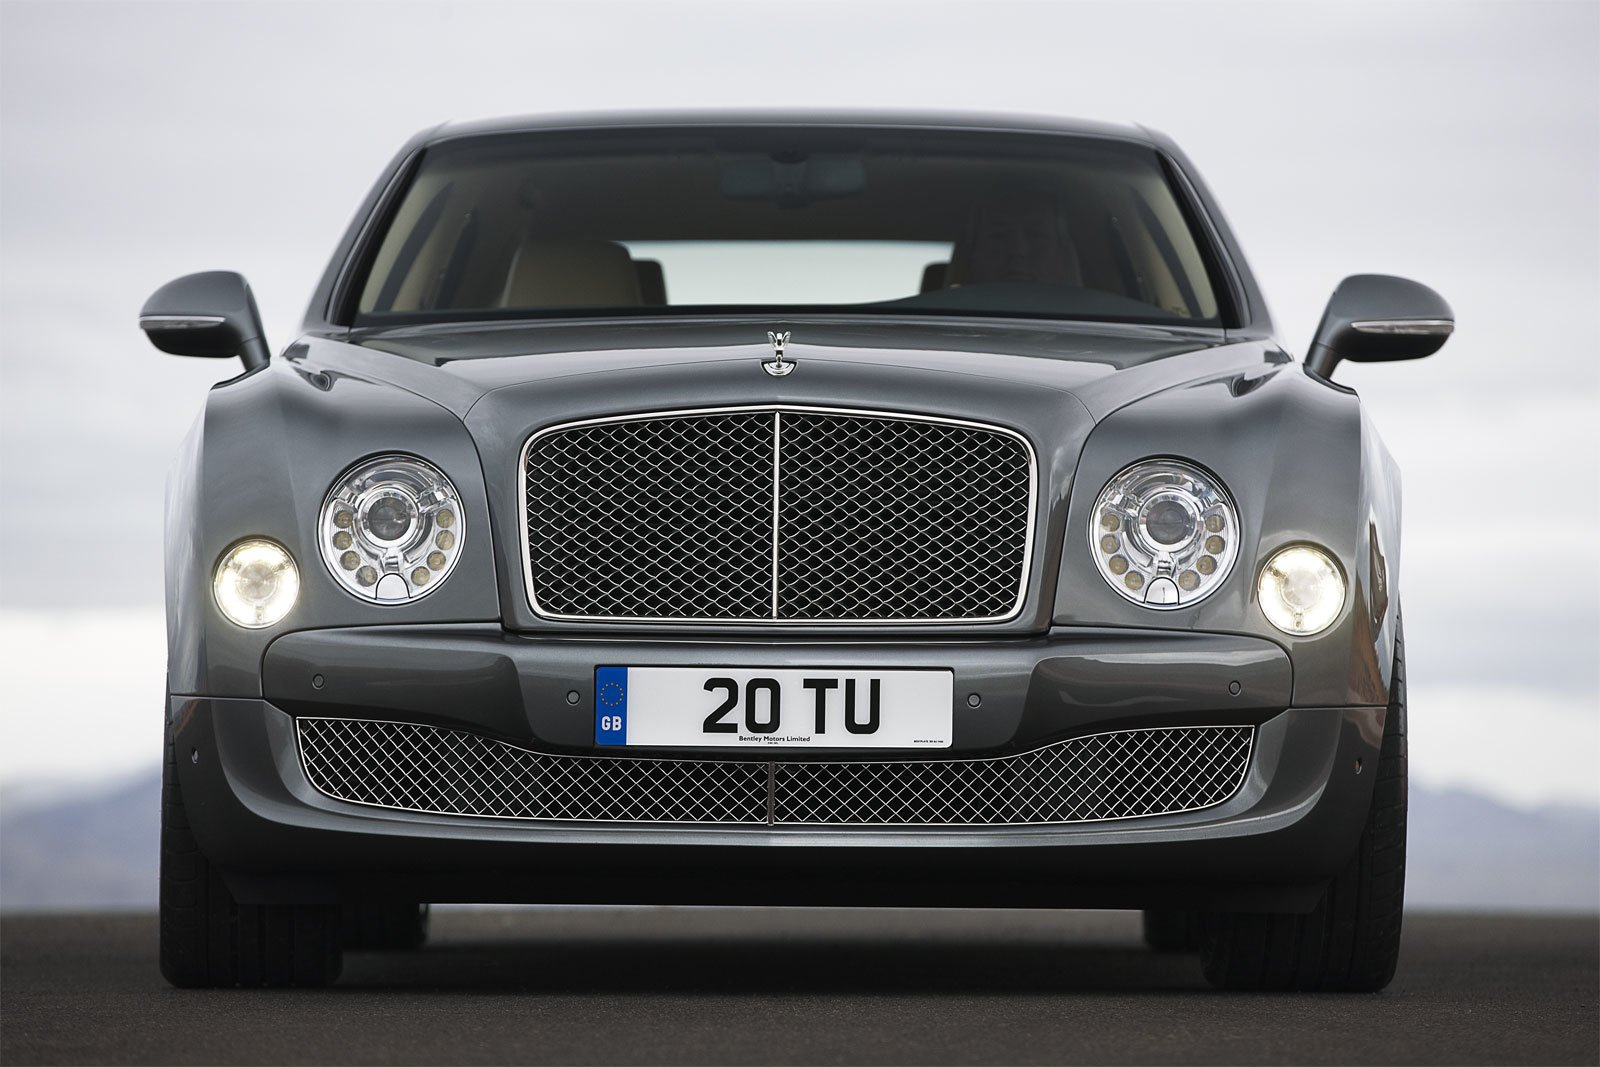 Latest Hd Wallpapers Fine Bentley Cars Images And Bentley Cars Free Download